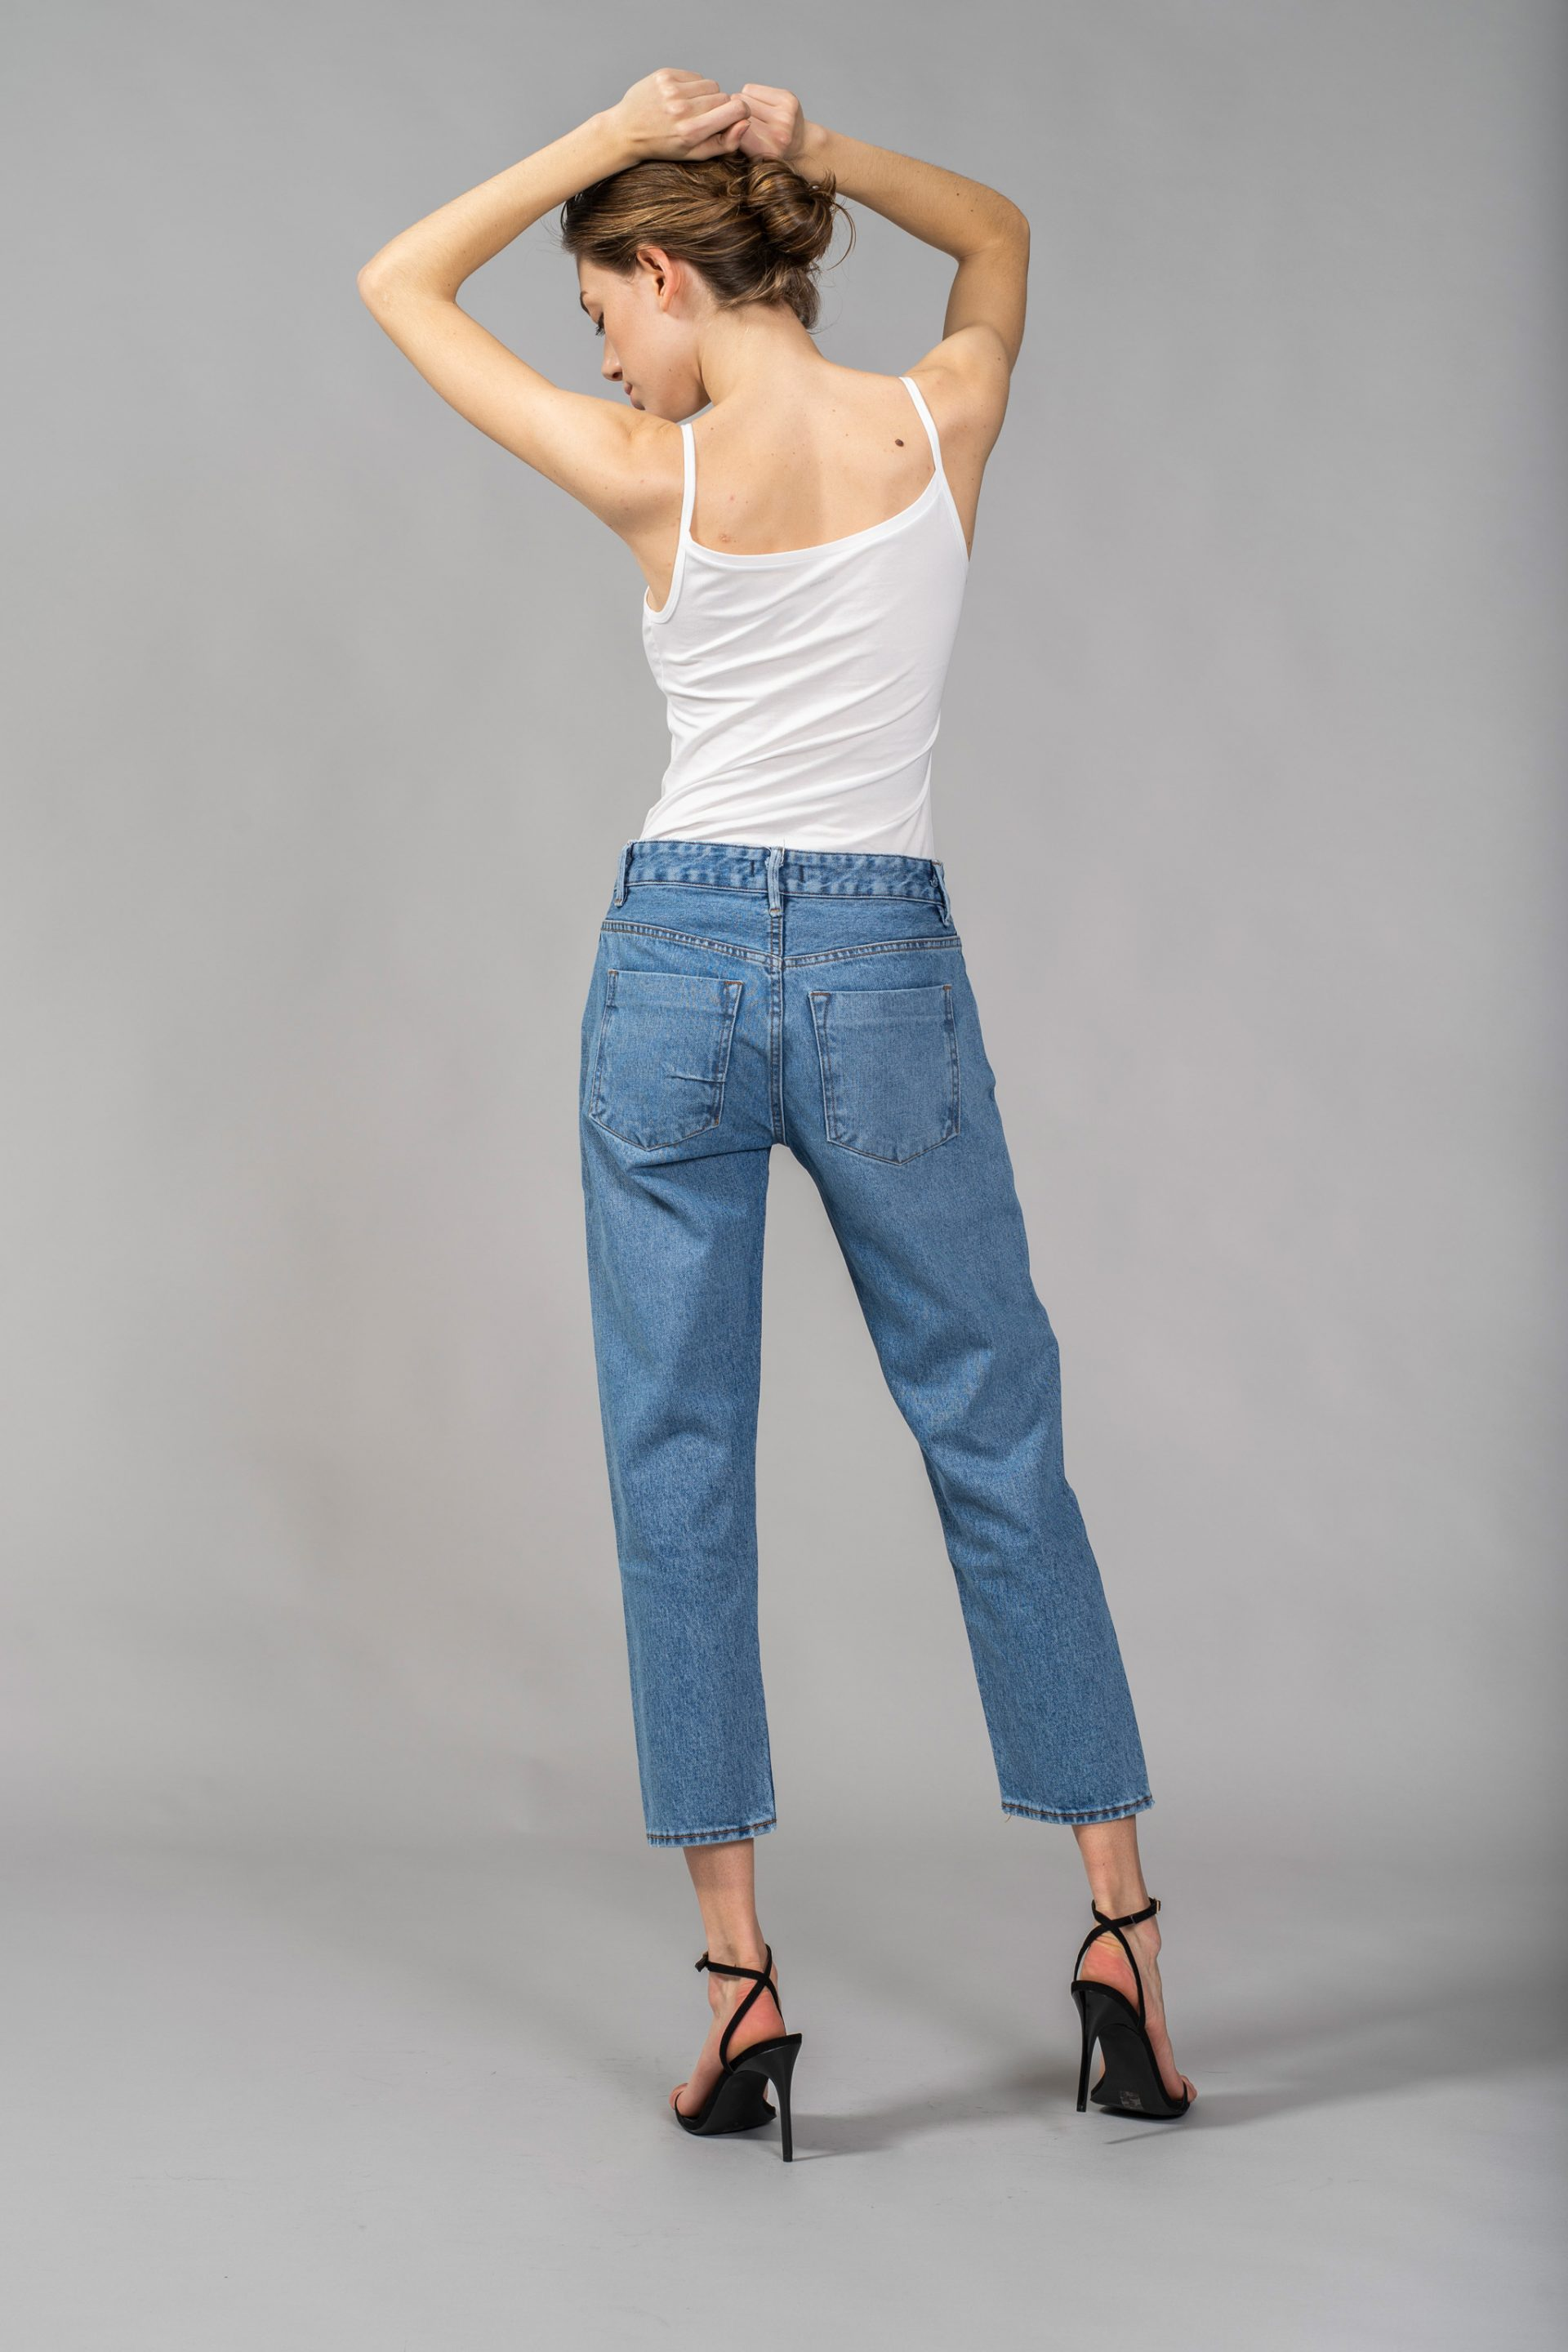 denim jeans rachel k-old recycled relaxed candiani denim regen collection candiani denim store